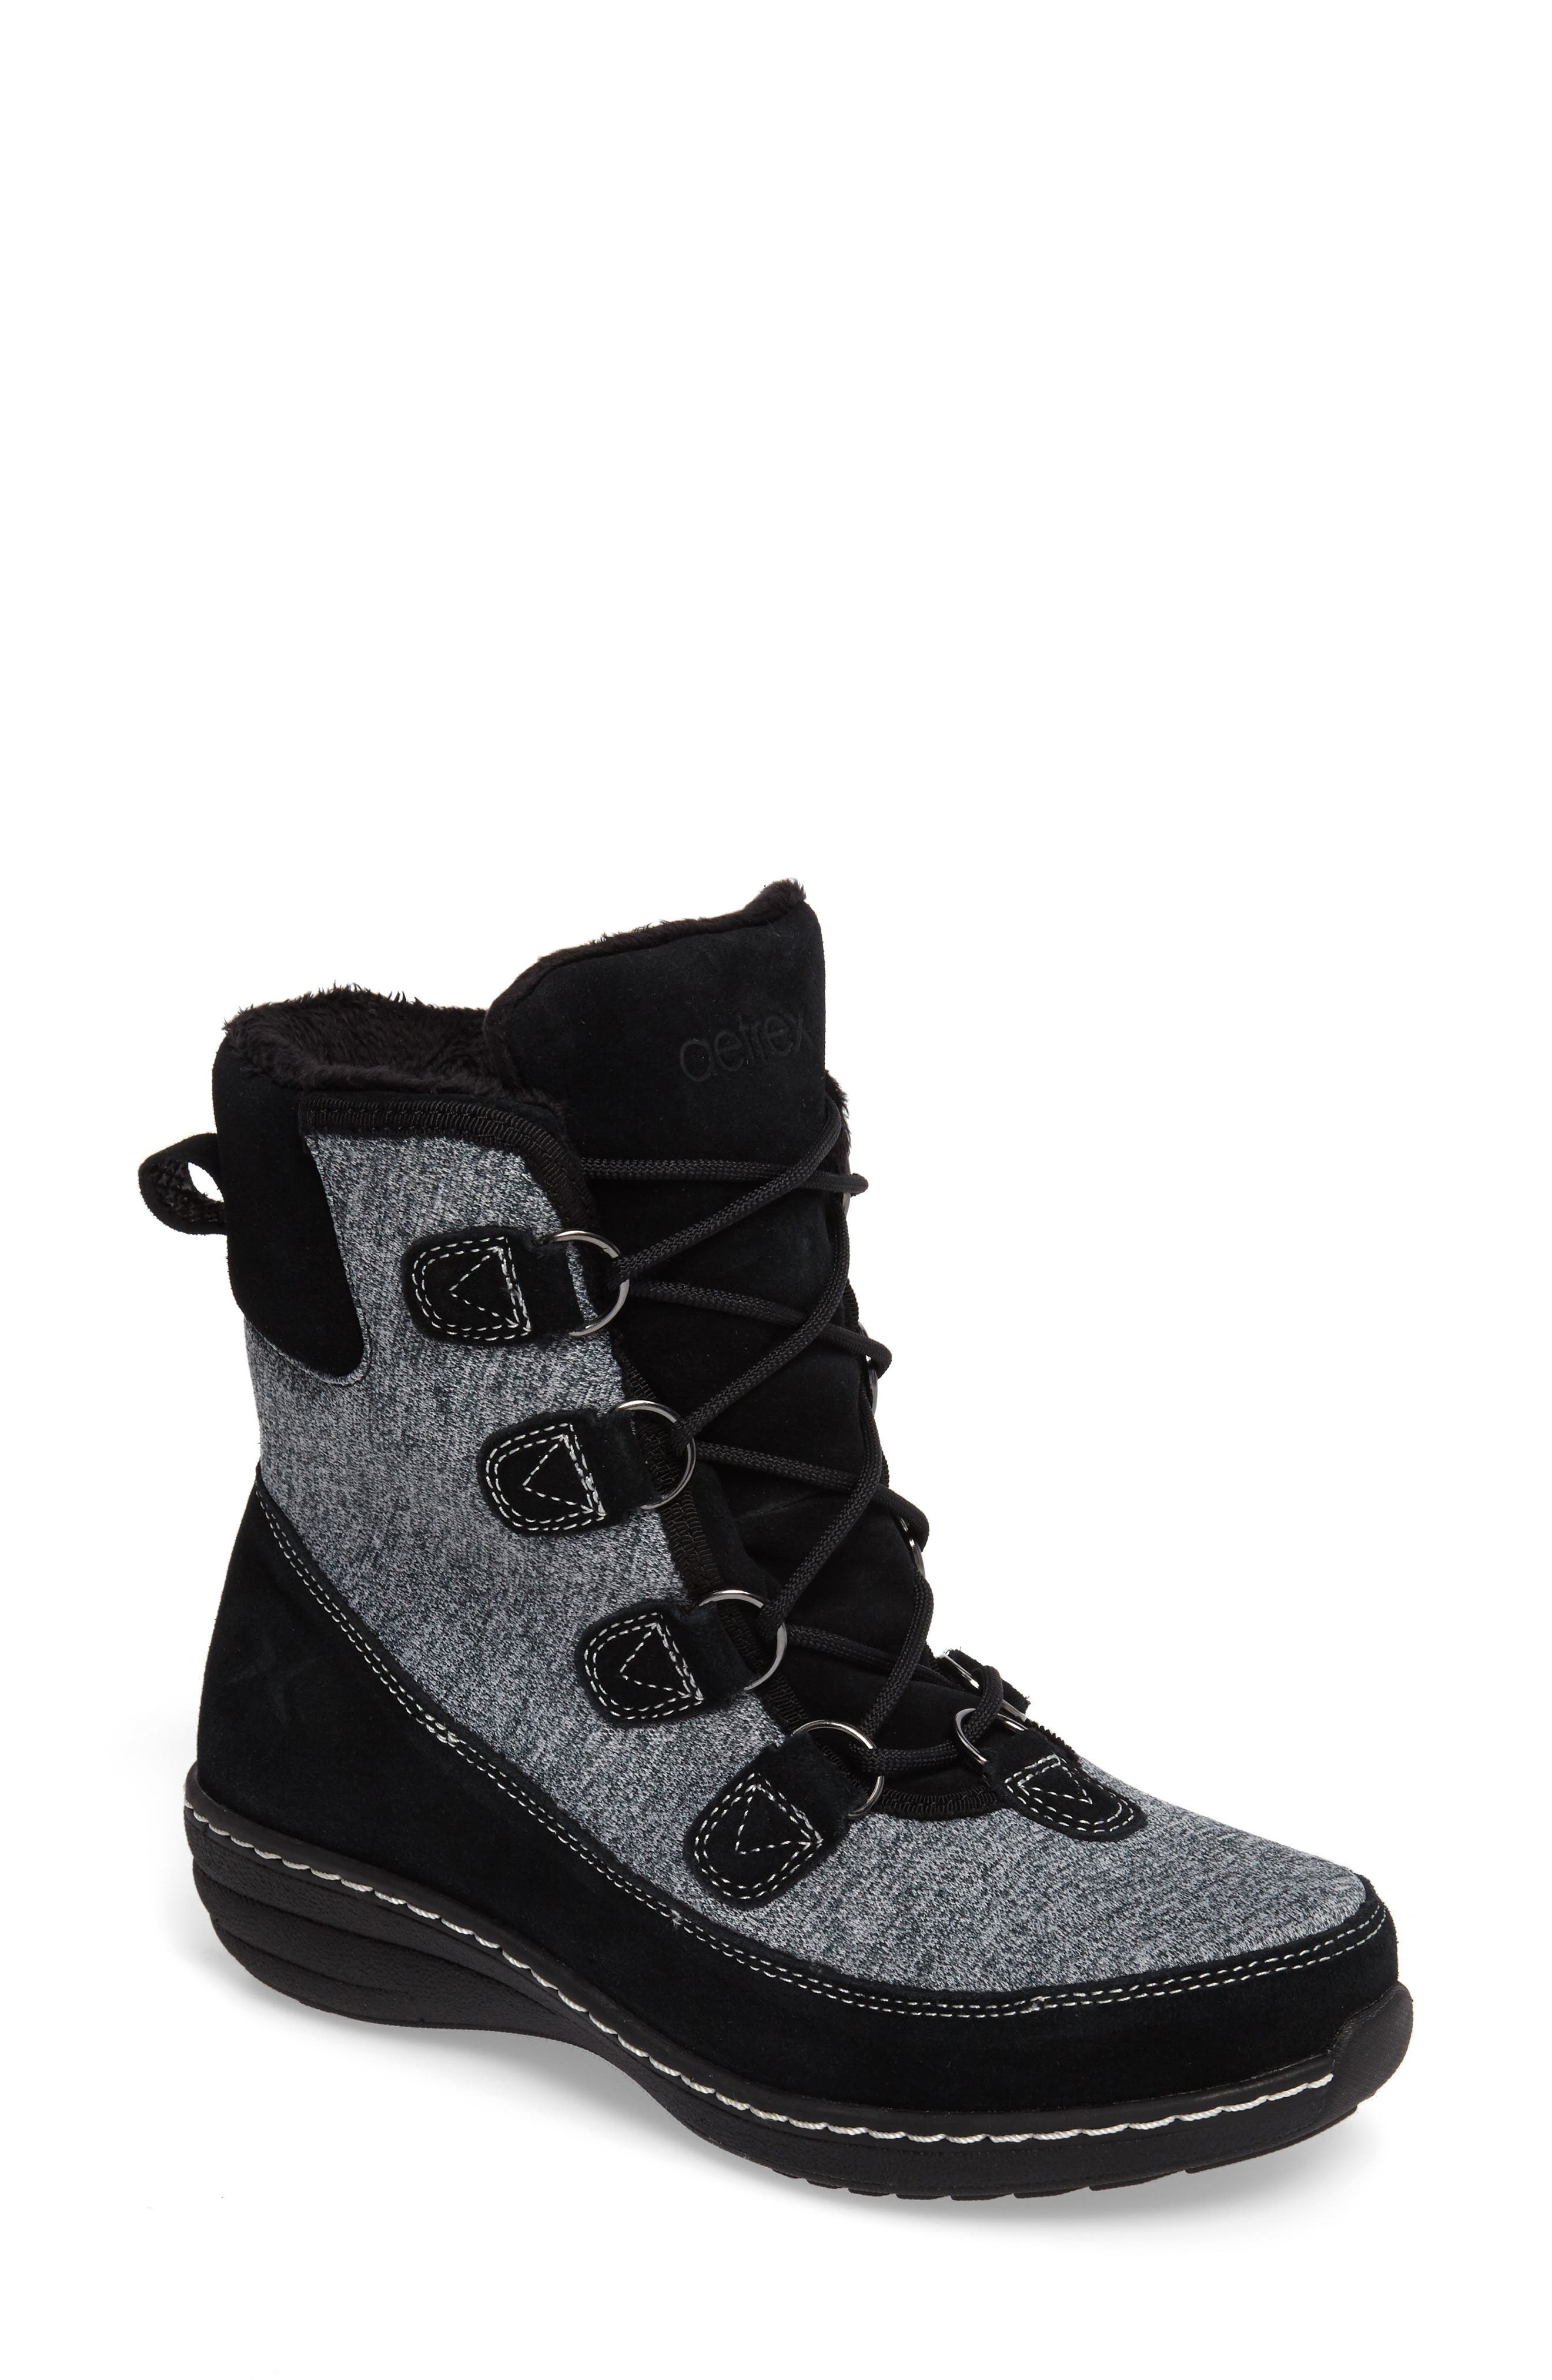 Berries Water Resistant Boot,                             Main thumbnail 1, color,                             MULTIBERRY SUEDE